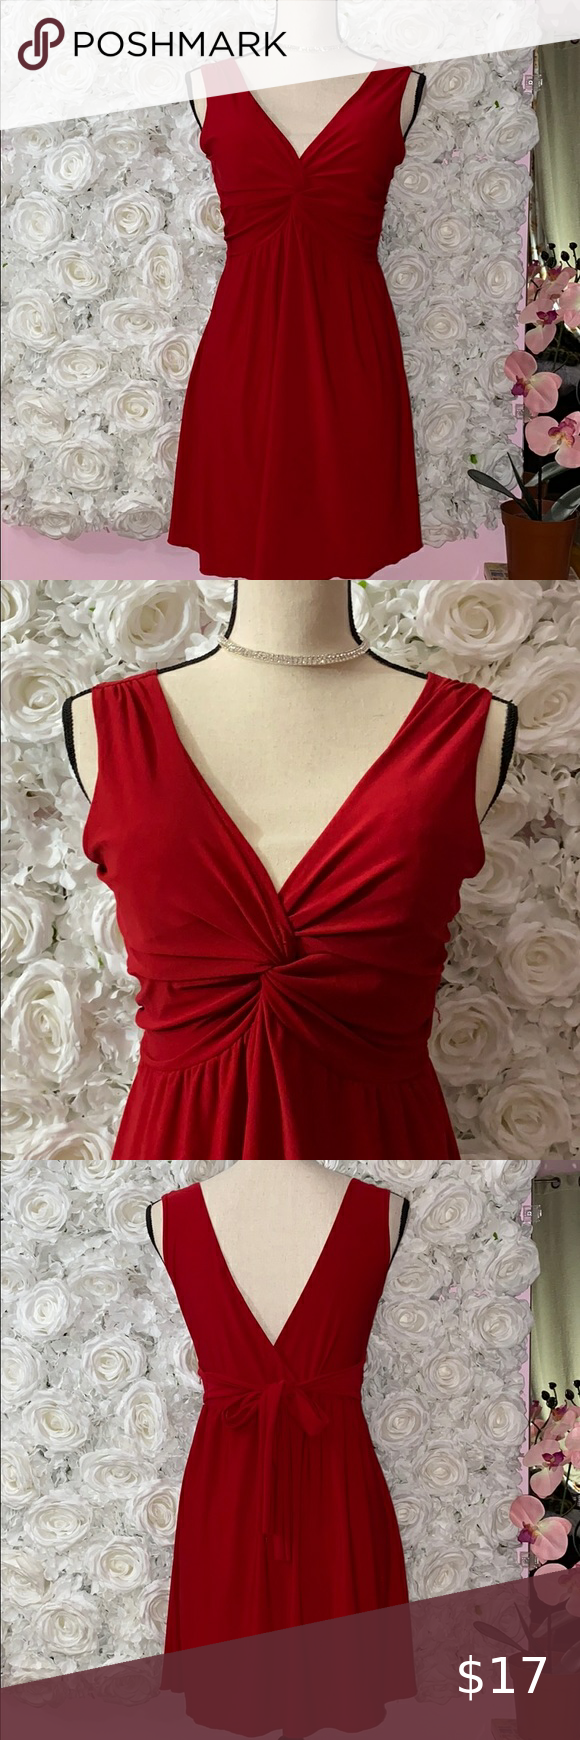 Red Dress In 2020 Red Dress Dresses Colorful Dresses [ 1740 x 580 Pixel ]